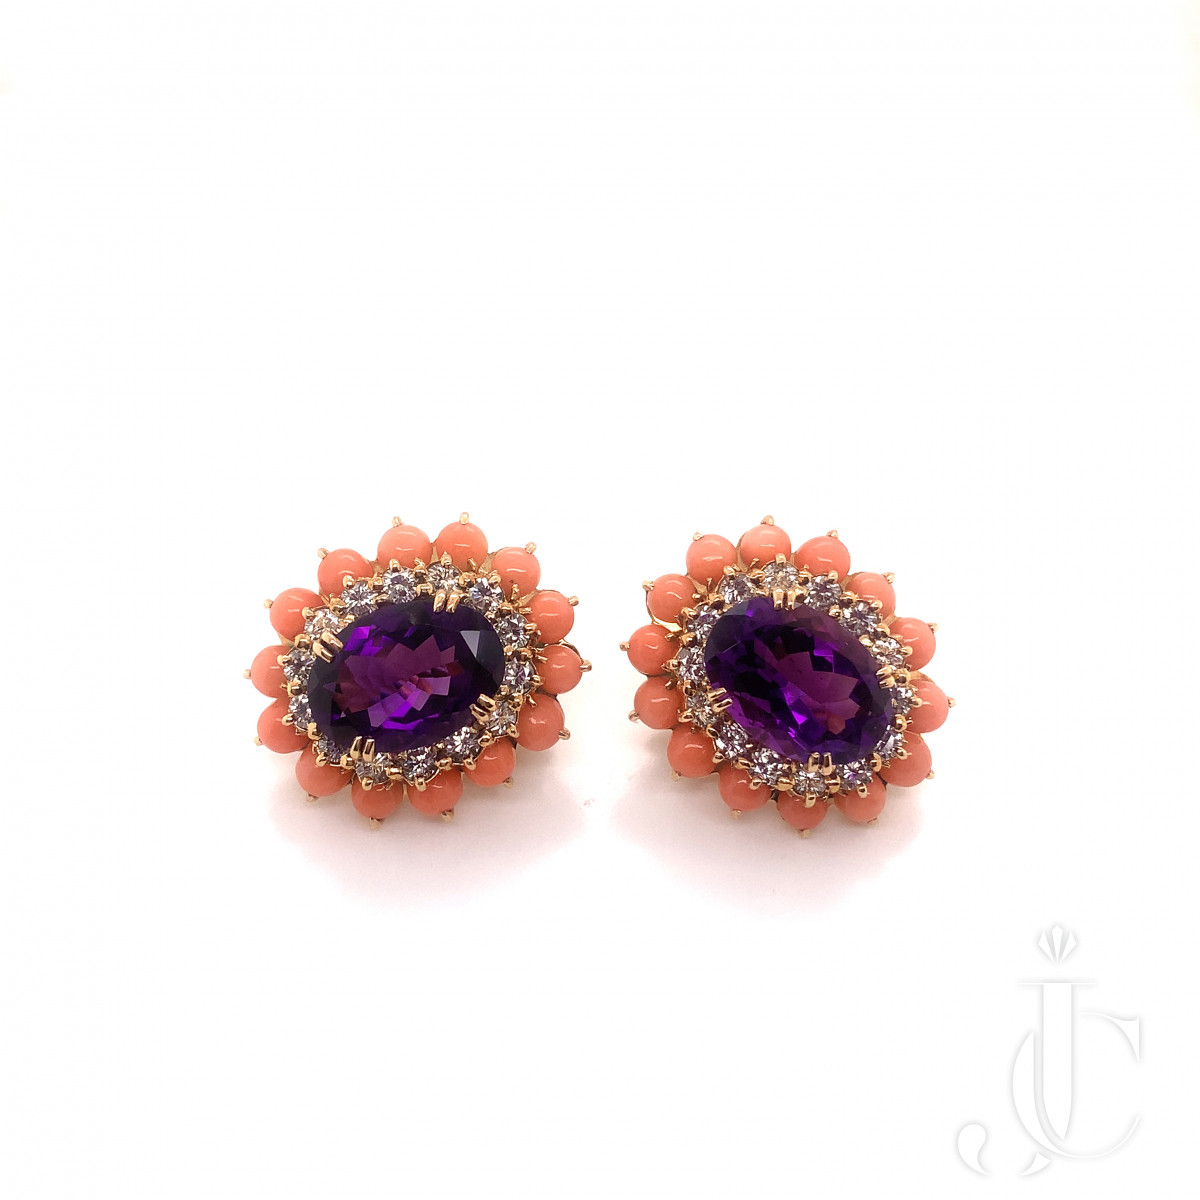 A pair of 18k gold diamond, amethyst and coral earring by Boucheron,